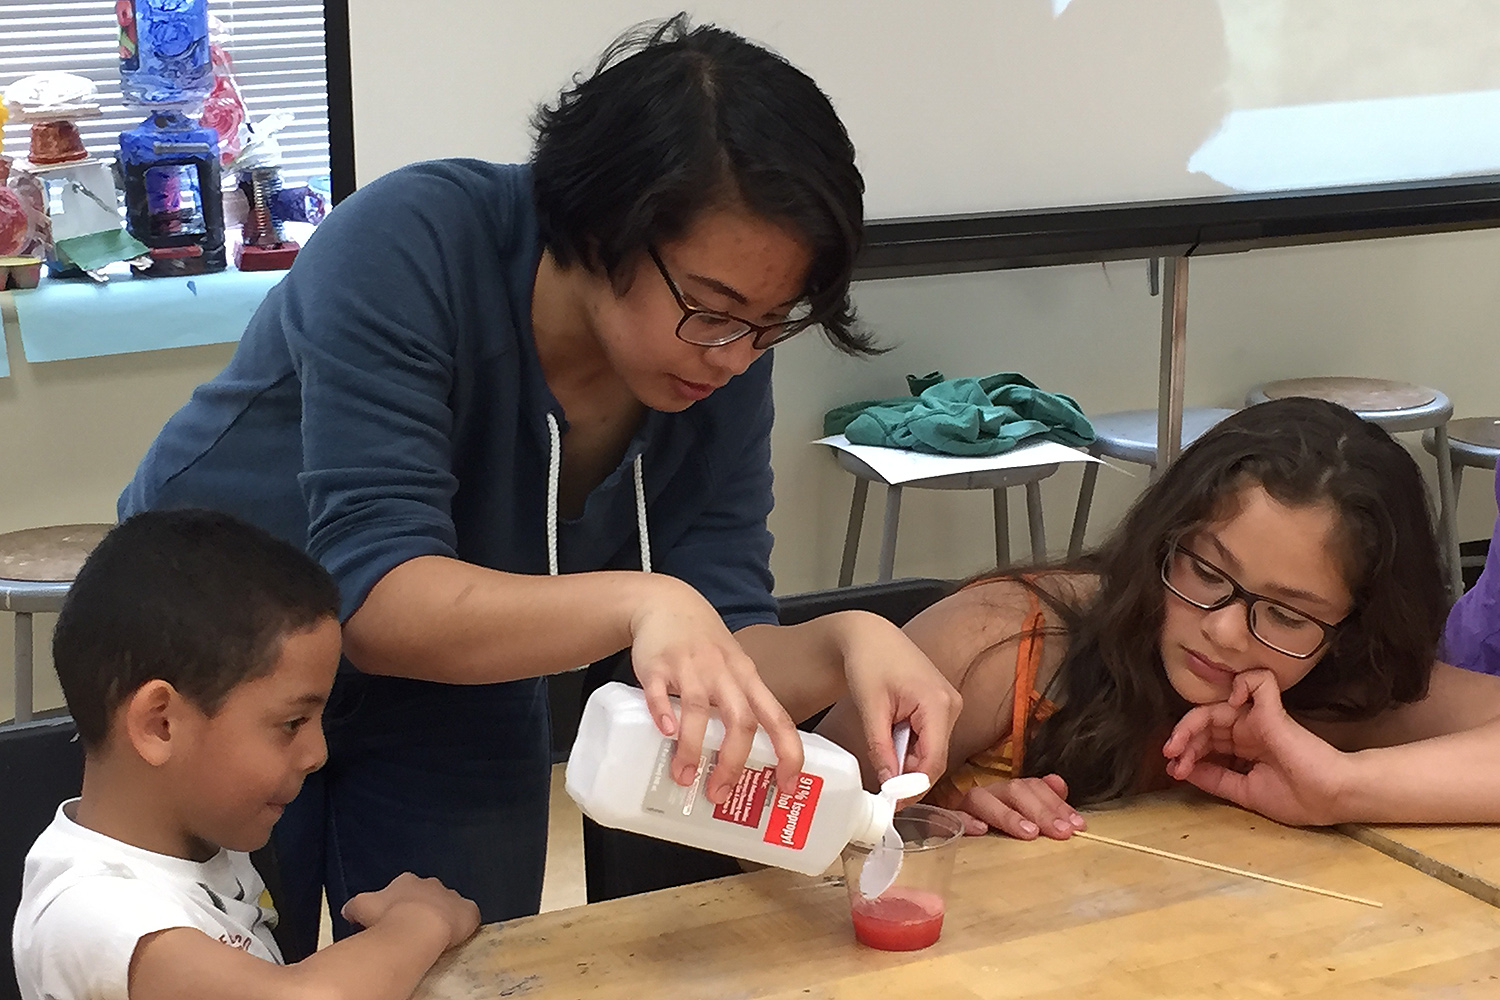 Erin Delon creates an experiment with two GSTLC students. Erin Delon creates an experiment with two GSTLC students.